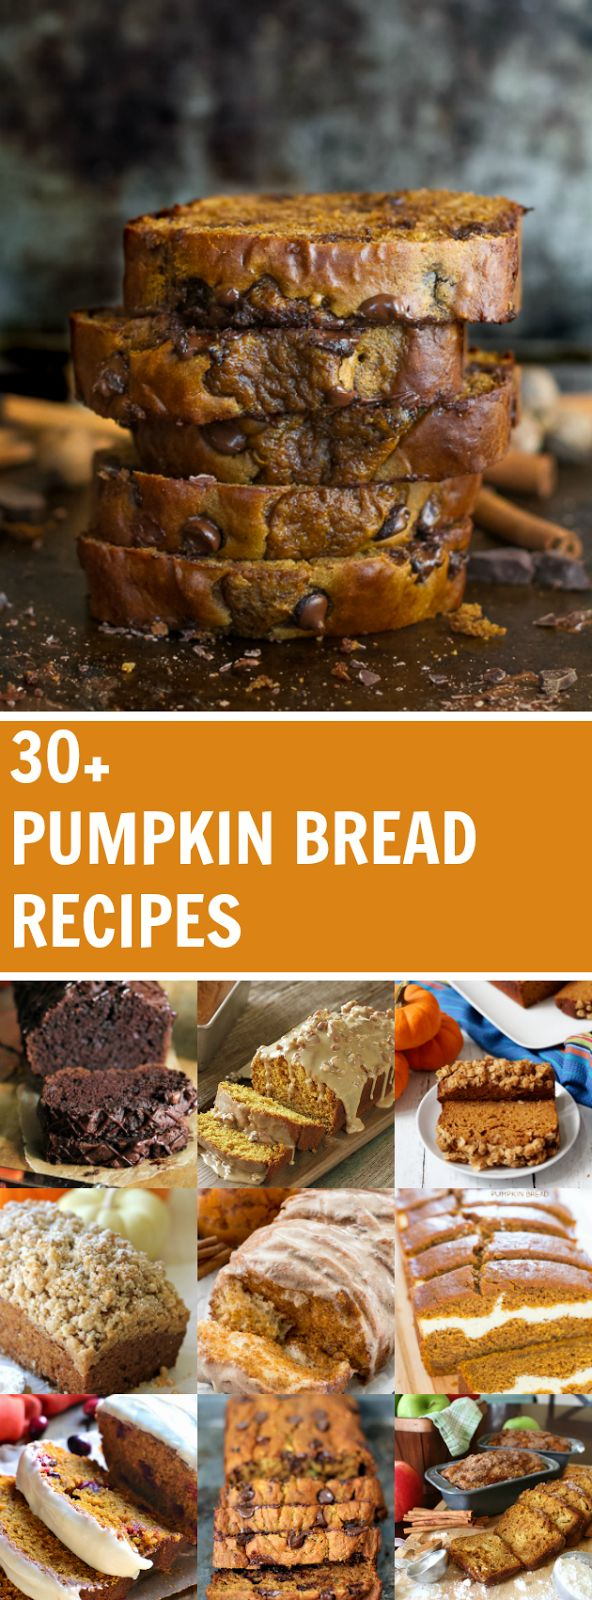 30+ Recipes for Pumpkin Bread http://www.keatseats.com/2017/08/30-recipes-for-pumpkin-bread.html?utm_campaign=coschedule&utm_source=pinterest&utm_medium=Something%20Swanky&utm_content=30%2B%20Recipes%20for%20Pumpkin%20Bread